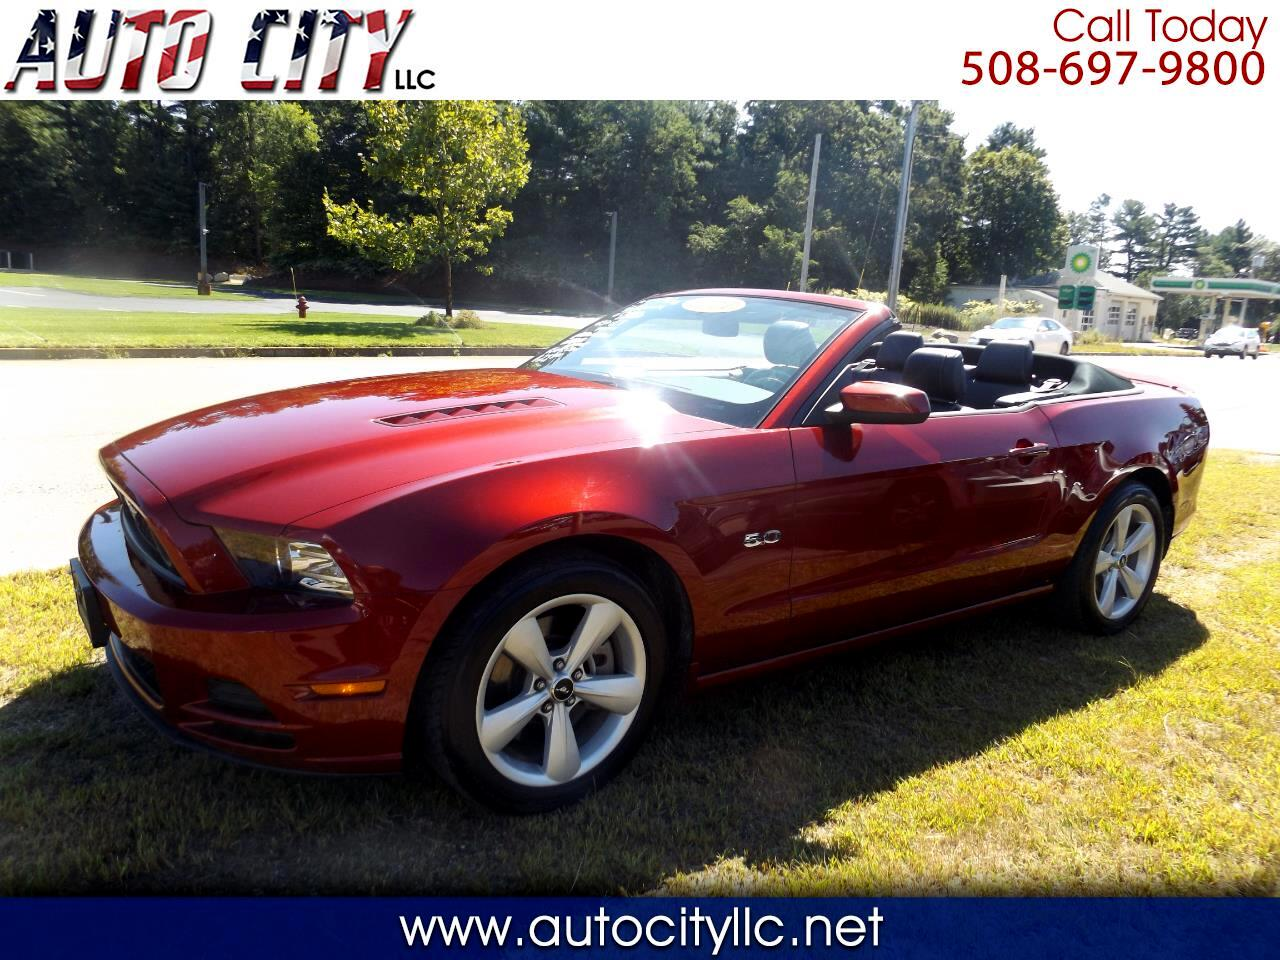 Ford Mustang GT convertible 2014